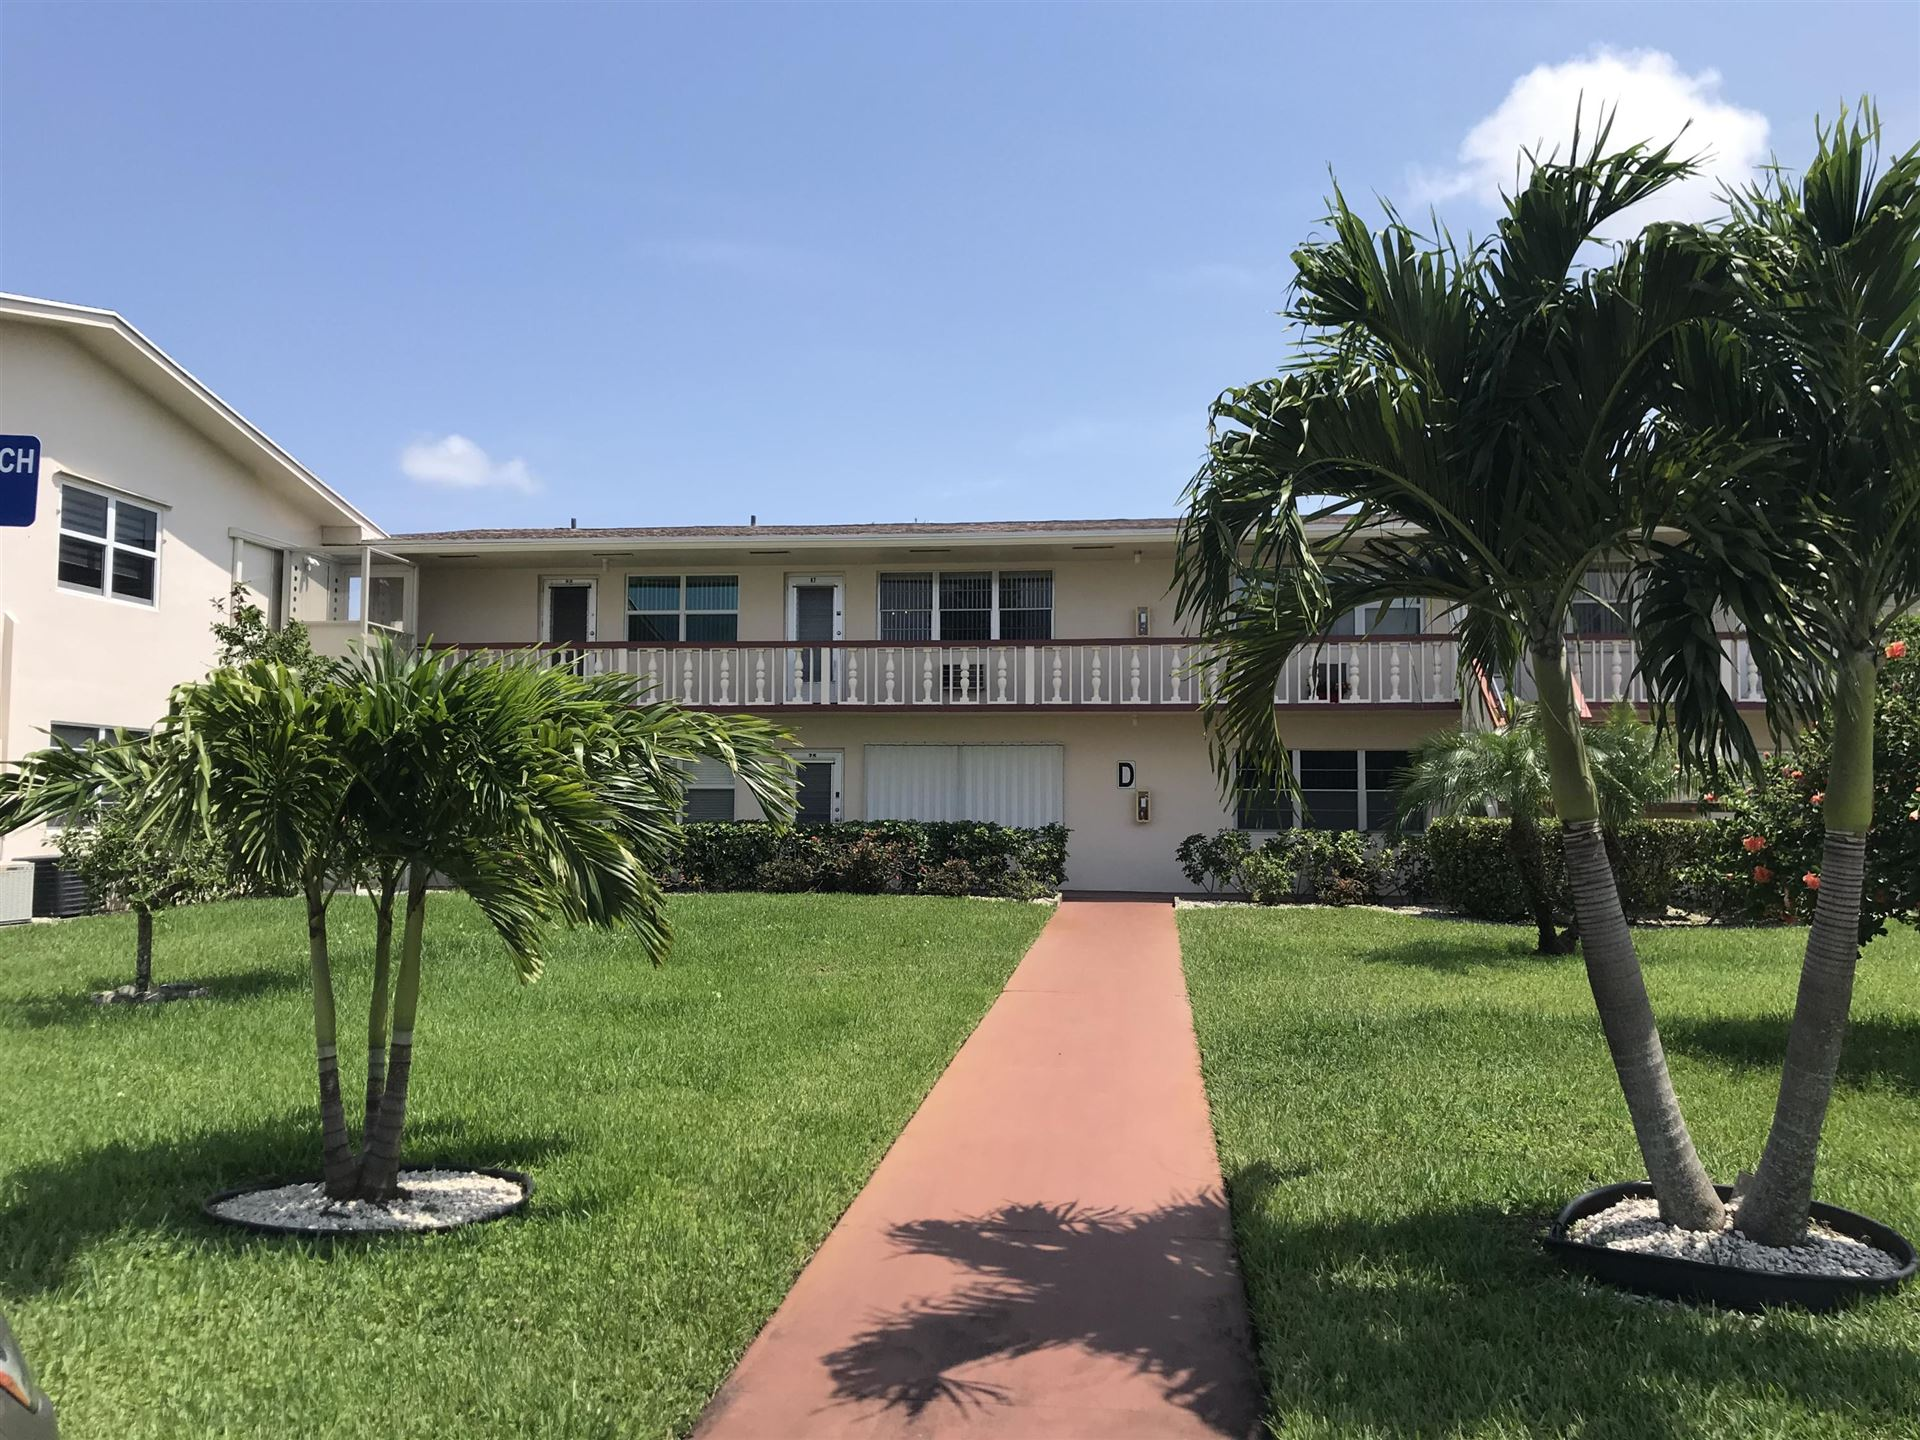 87 Norwich D, West Palm Beach, FL 33417 - #: RX-10626211